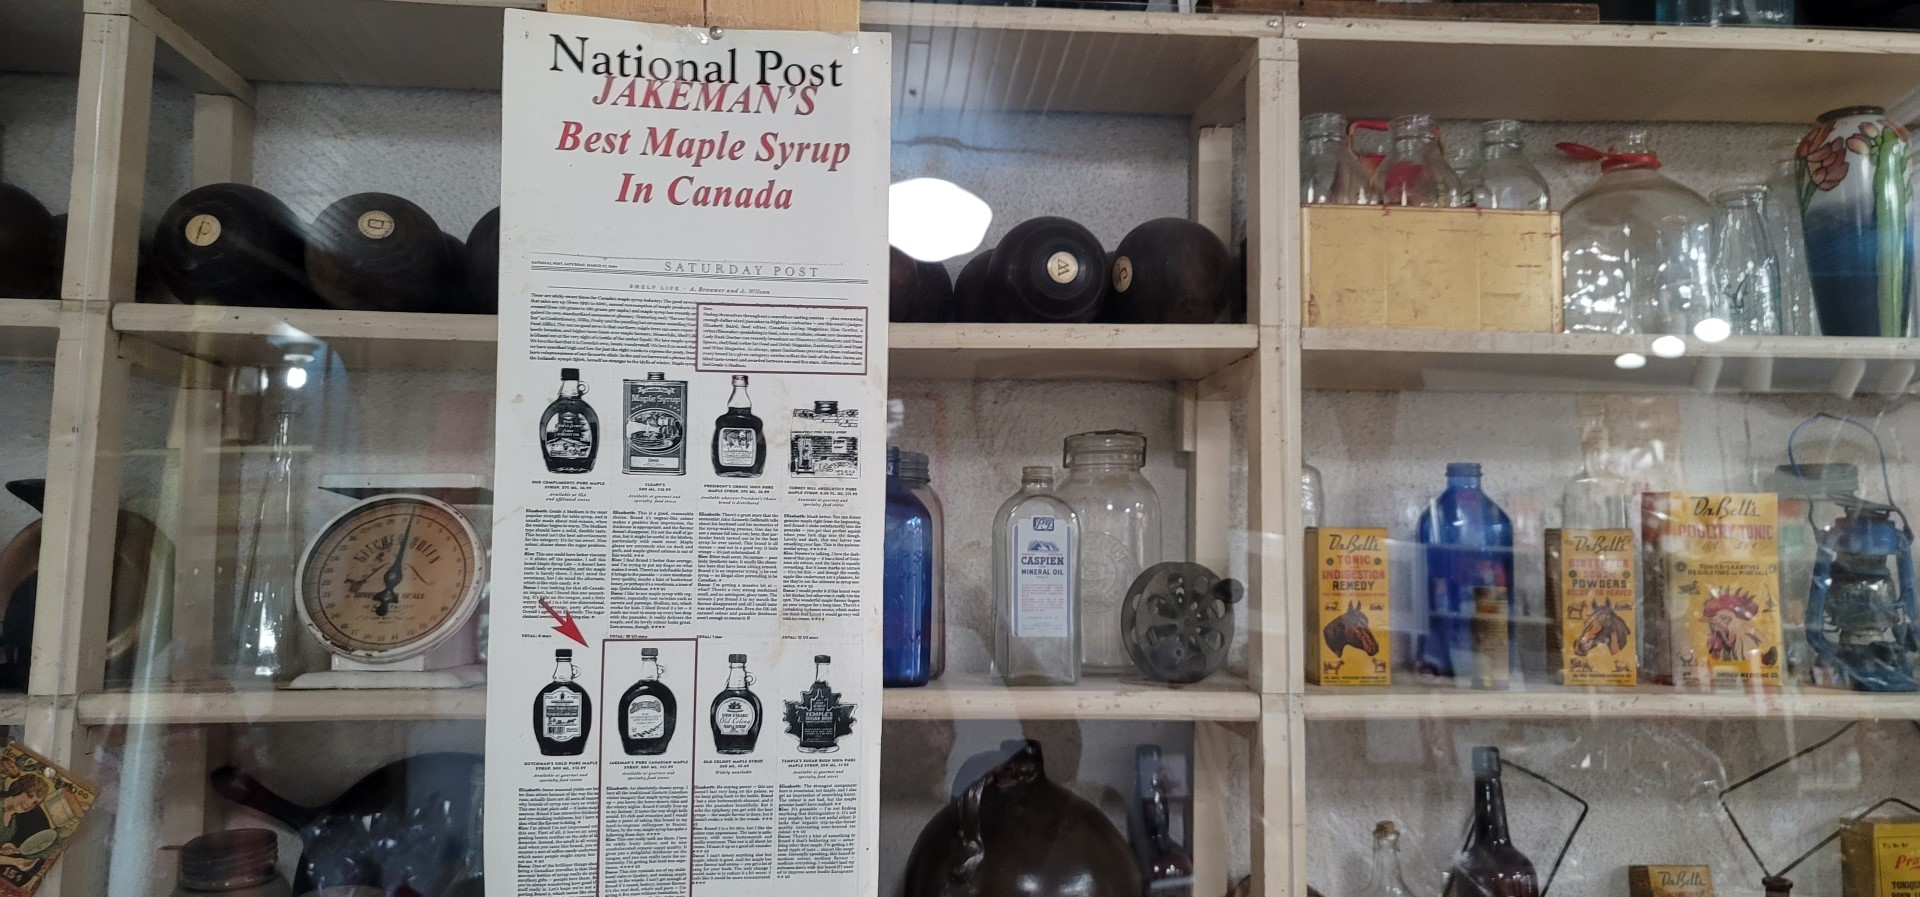 Maple syrup artifacts